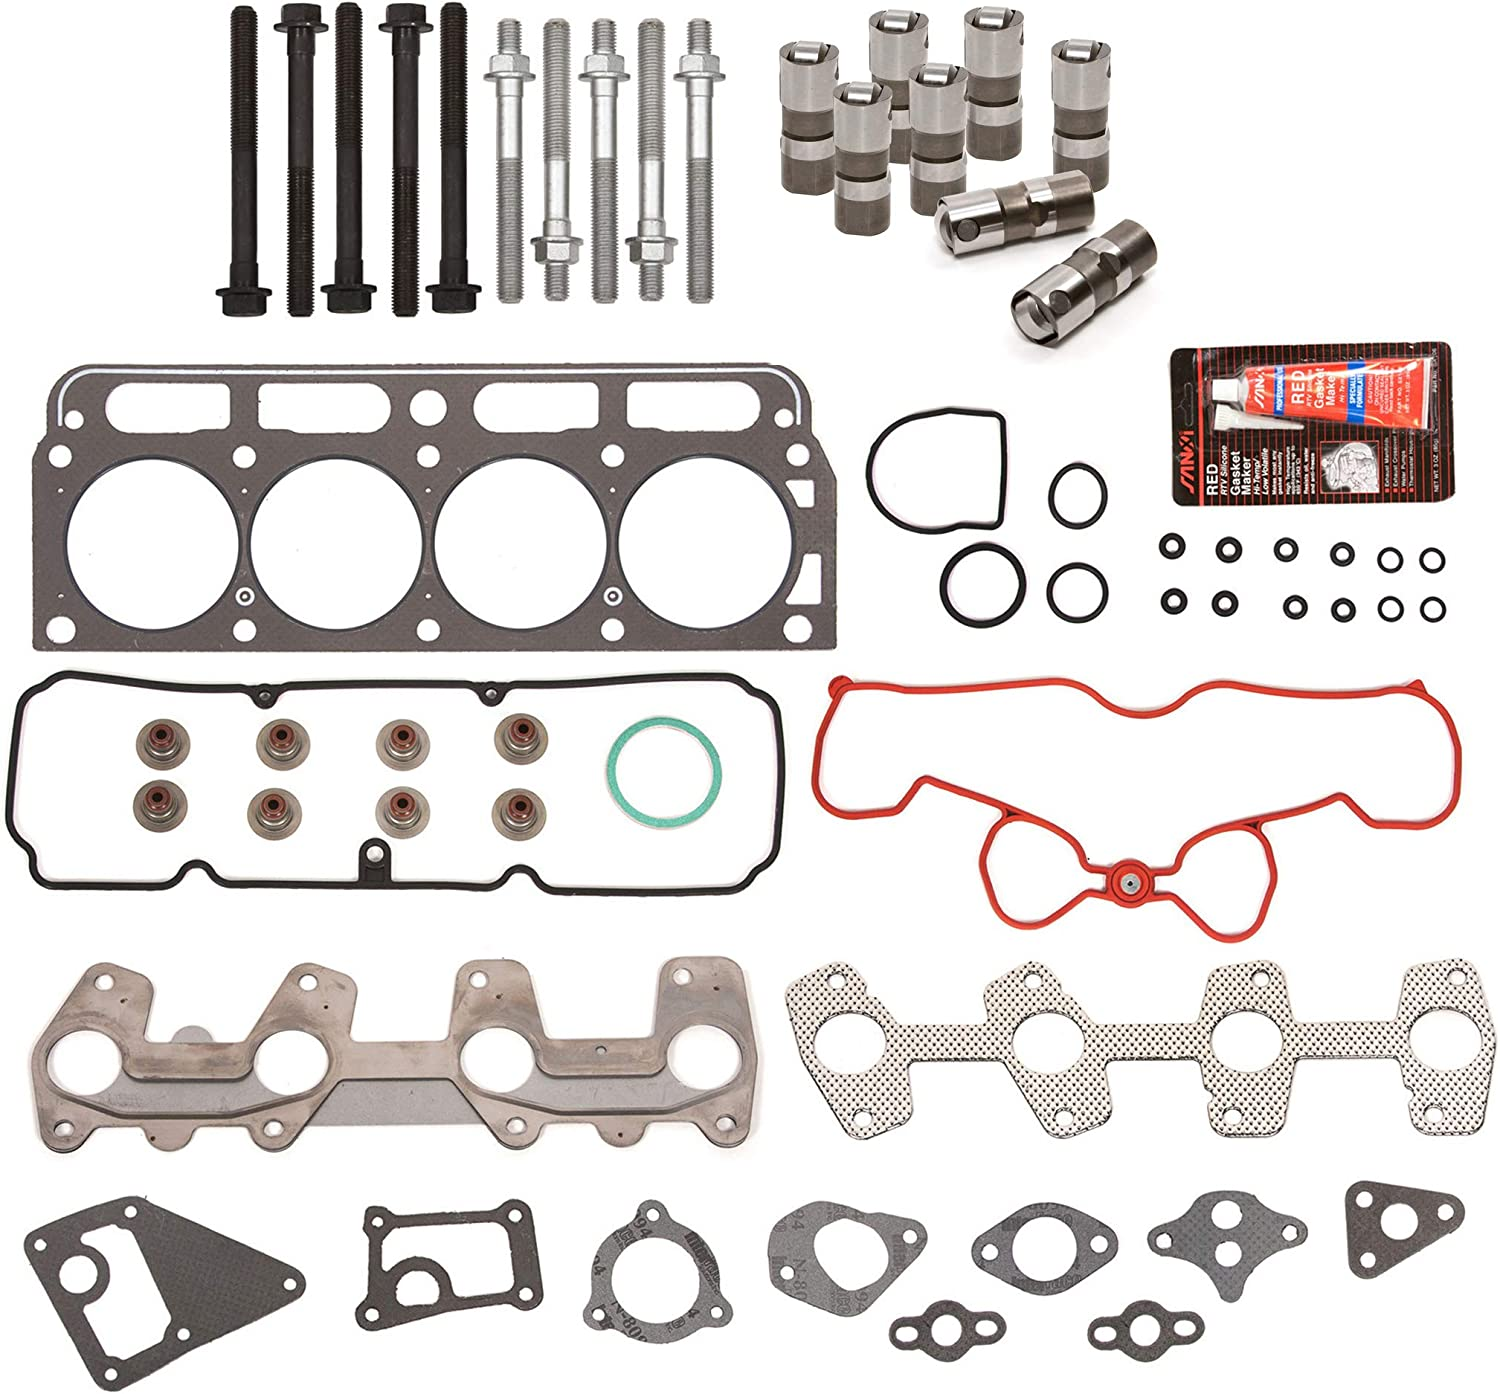 HS9170PT-2 Felpro Set Head Gasket Sets New for Chevy S10 Pickup Chevrolet S-10